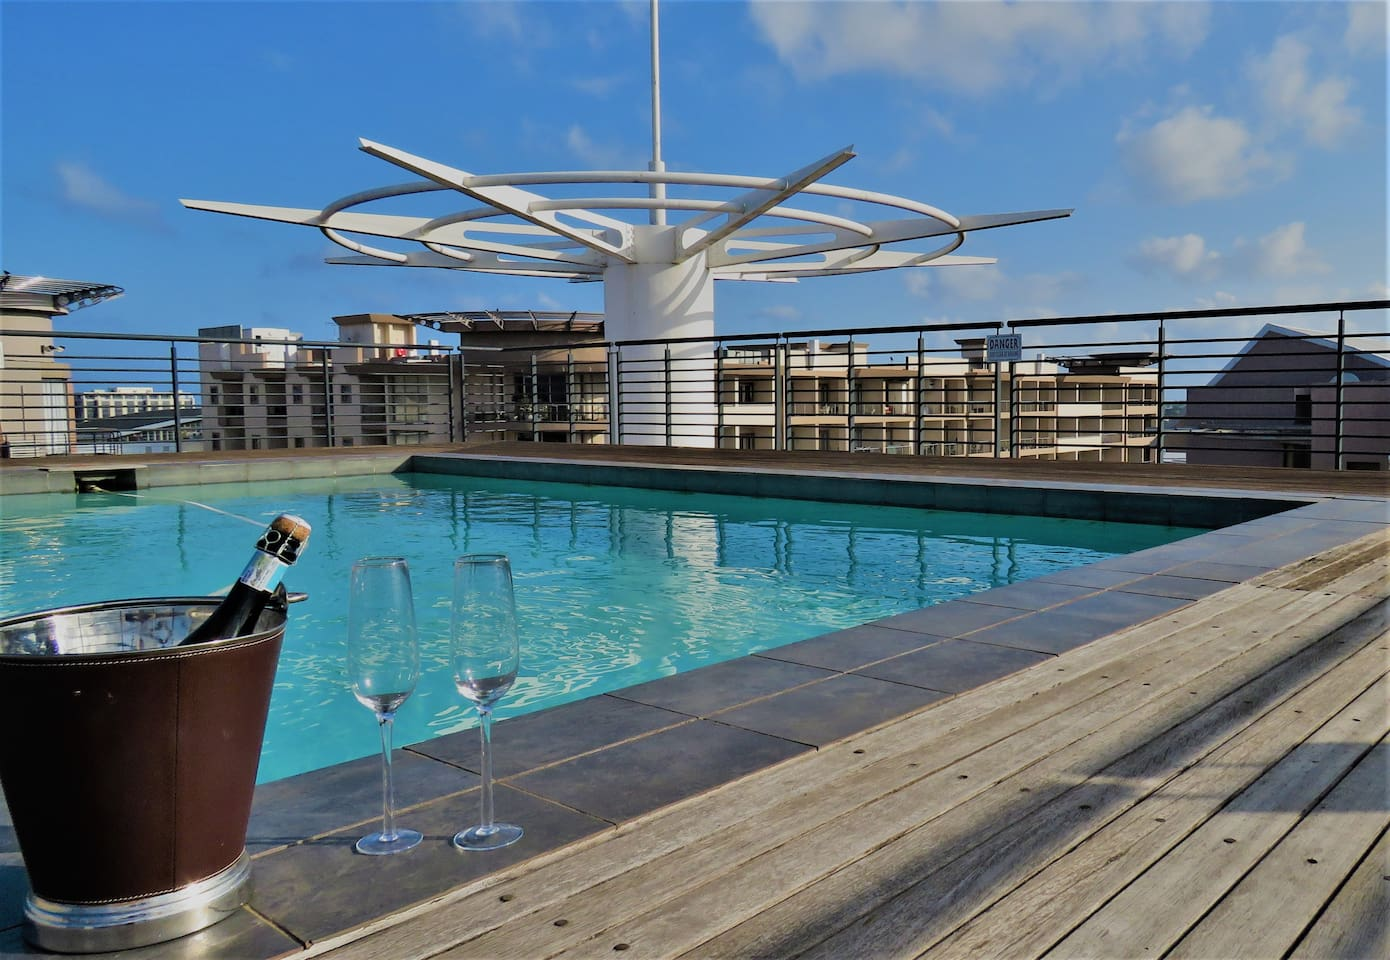 The gorgeous roof terrace pool is the perfect place to relax in the sun and enjoy a refreshing swim. The roof also has braai (BBQ) facilities so you can entertain in style with awesome views.